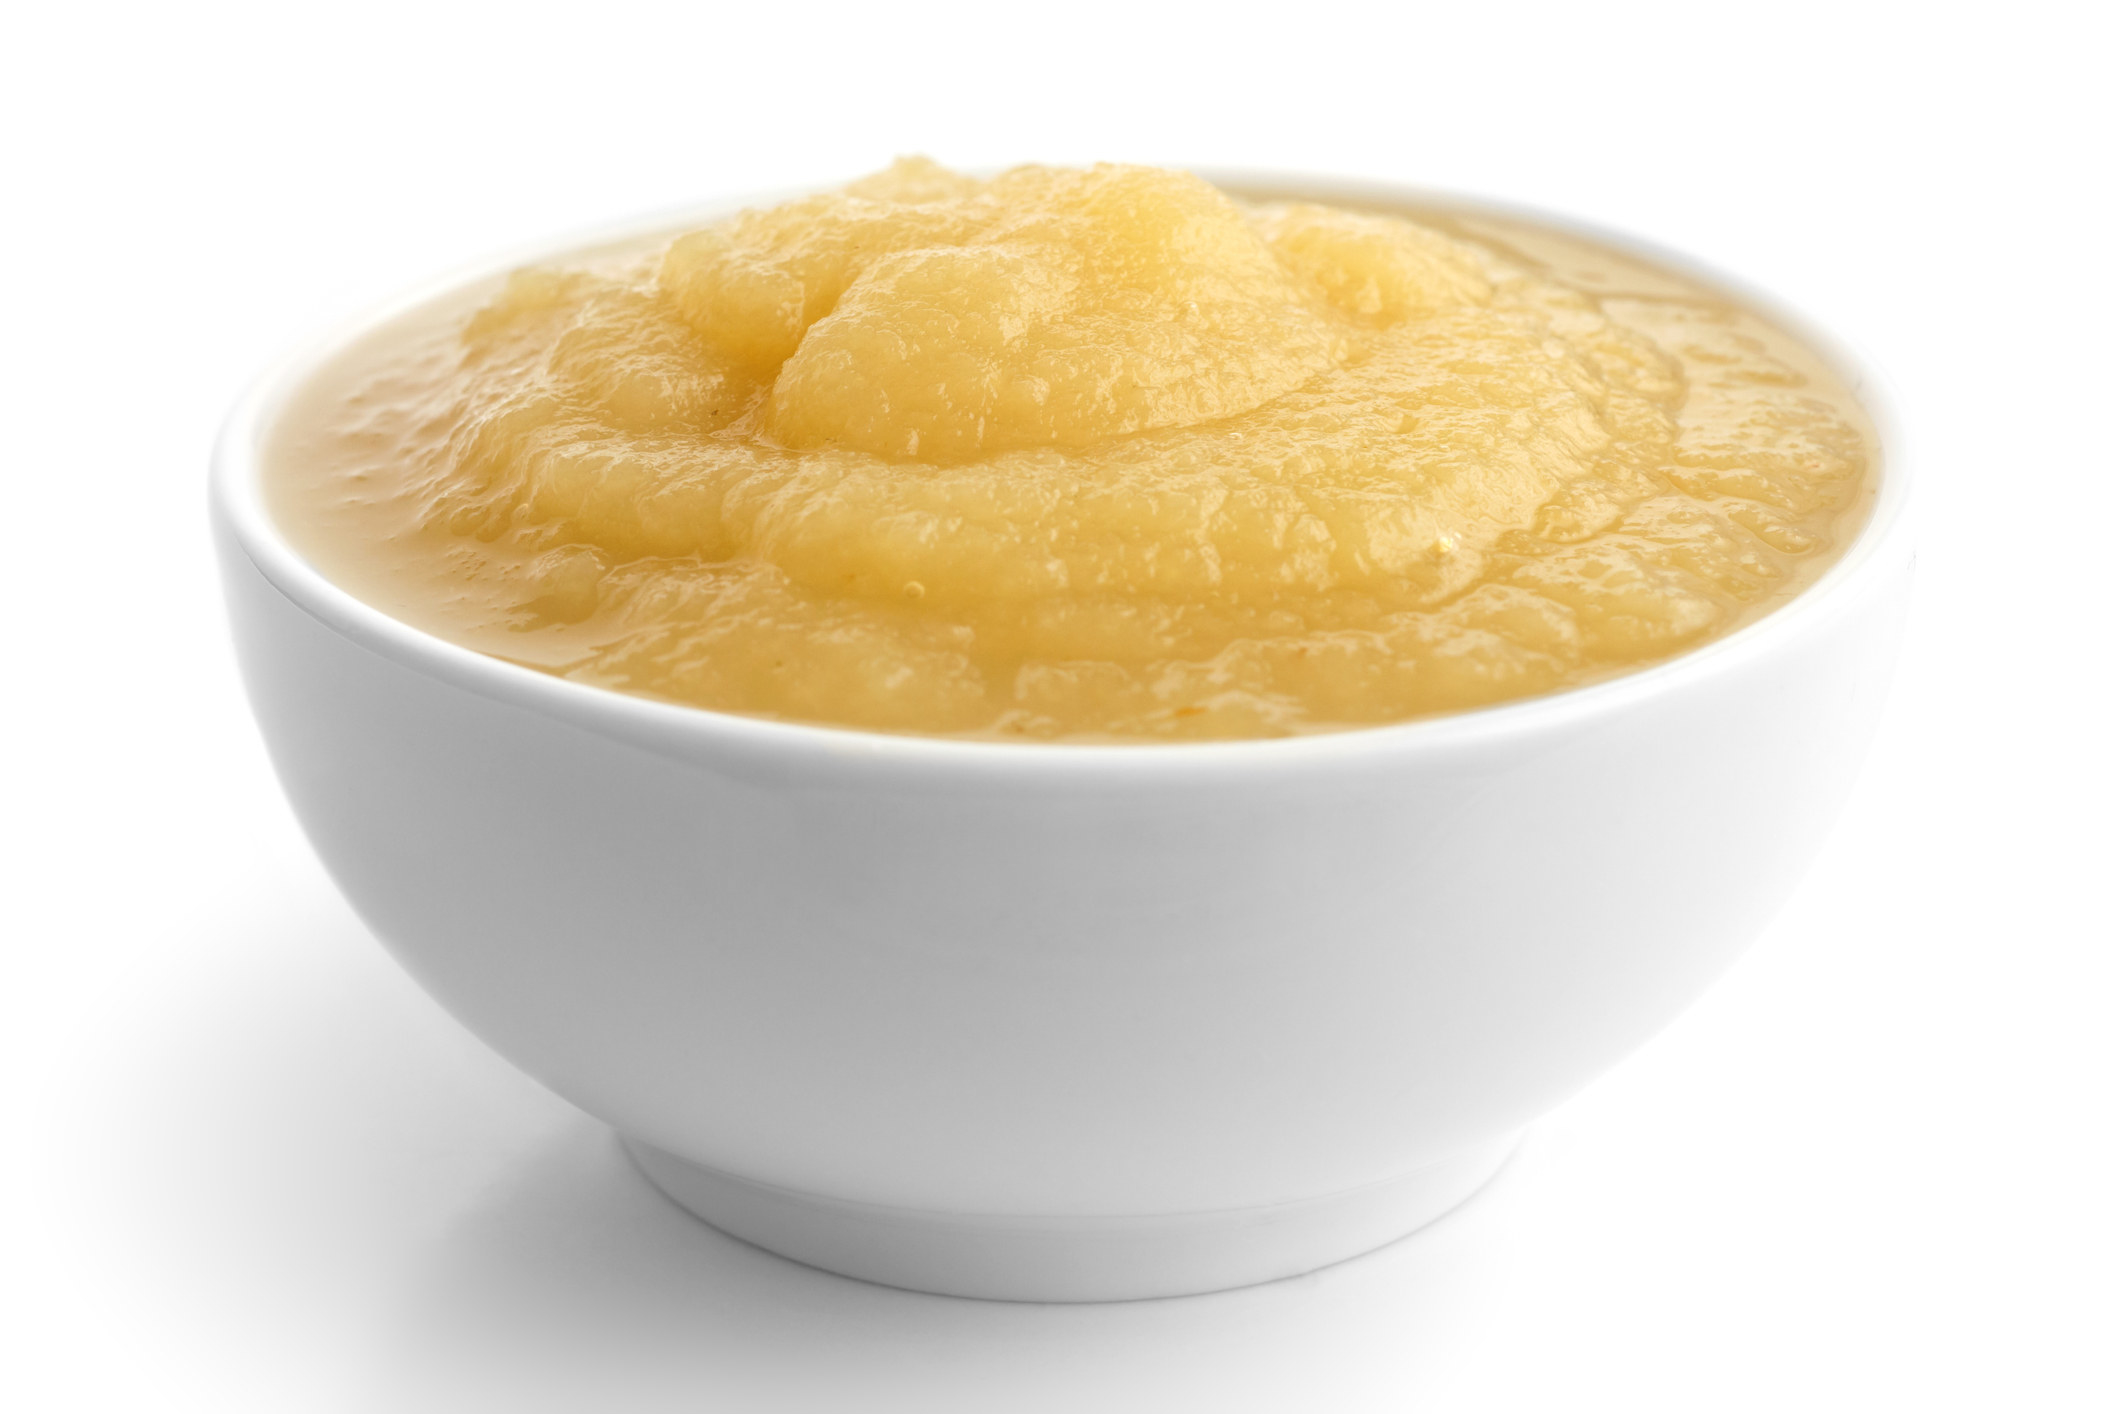 A small white bowl of apple sauce.